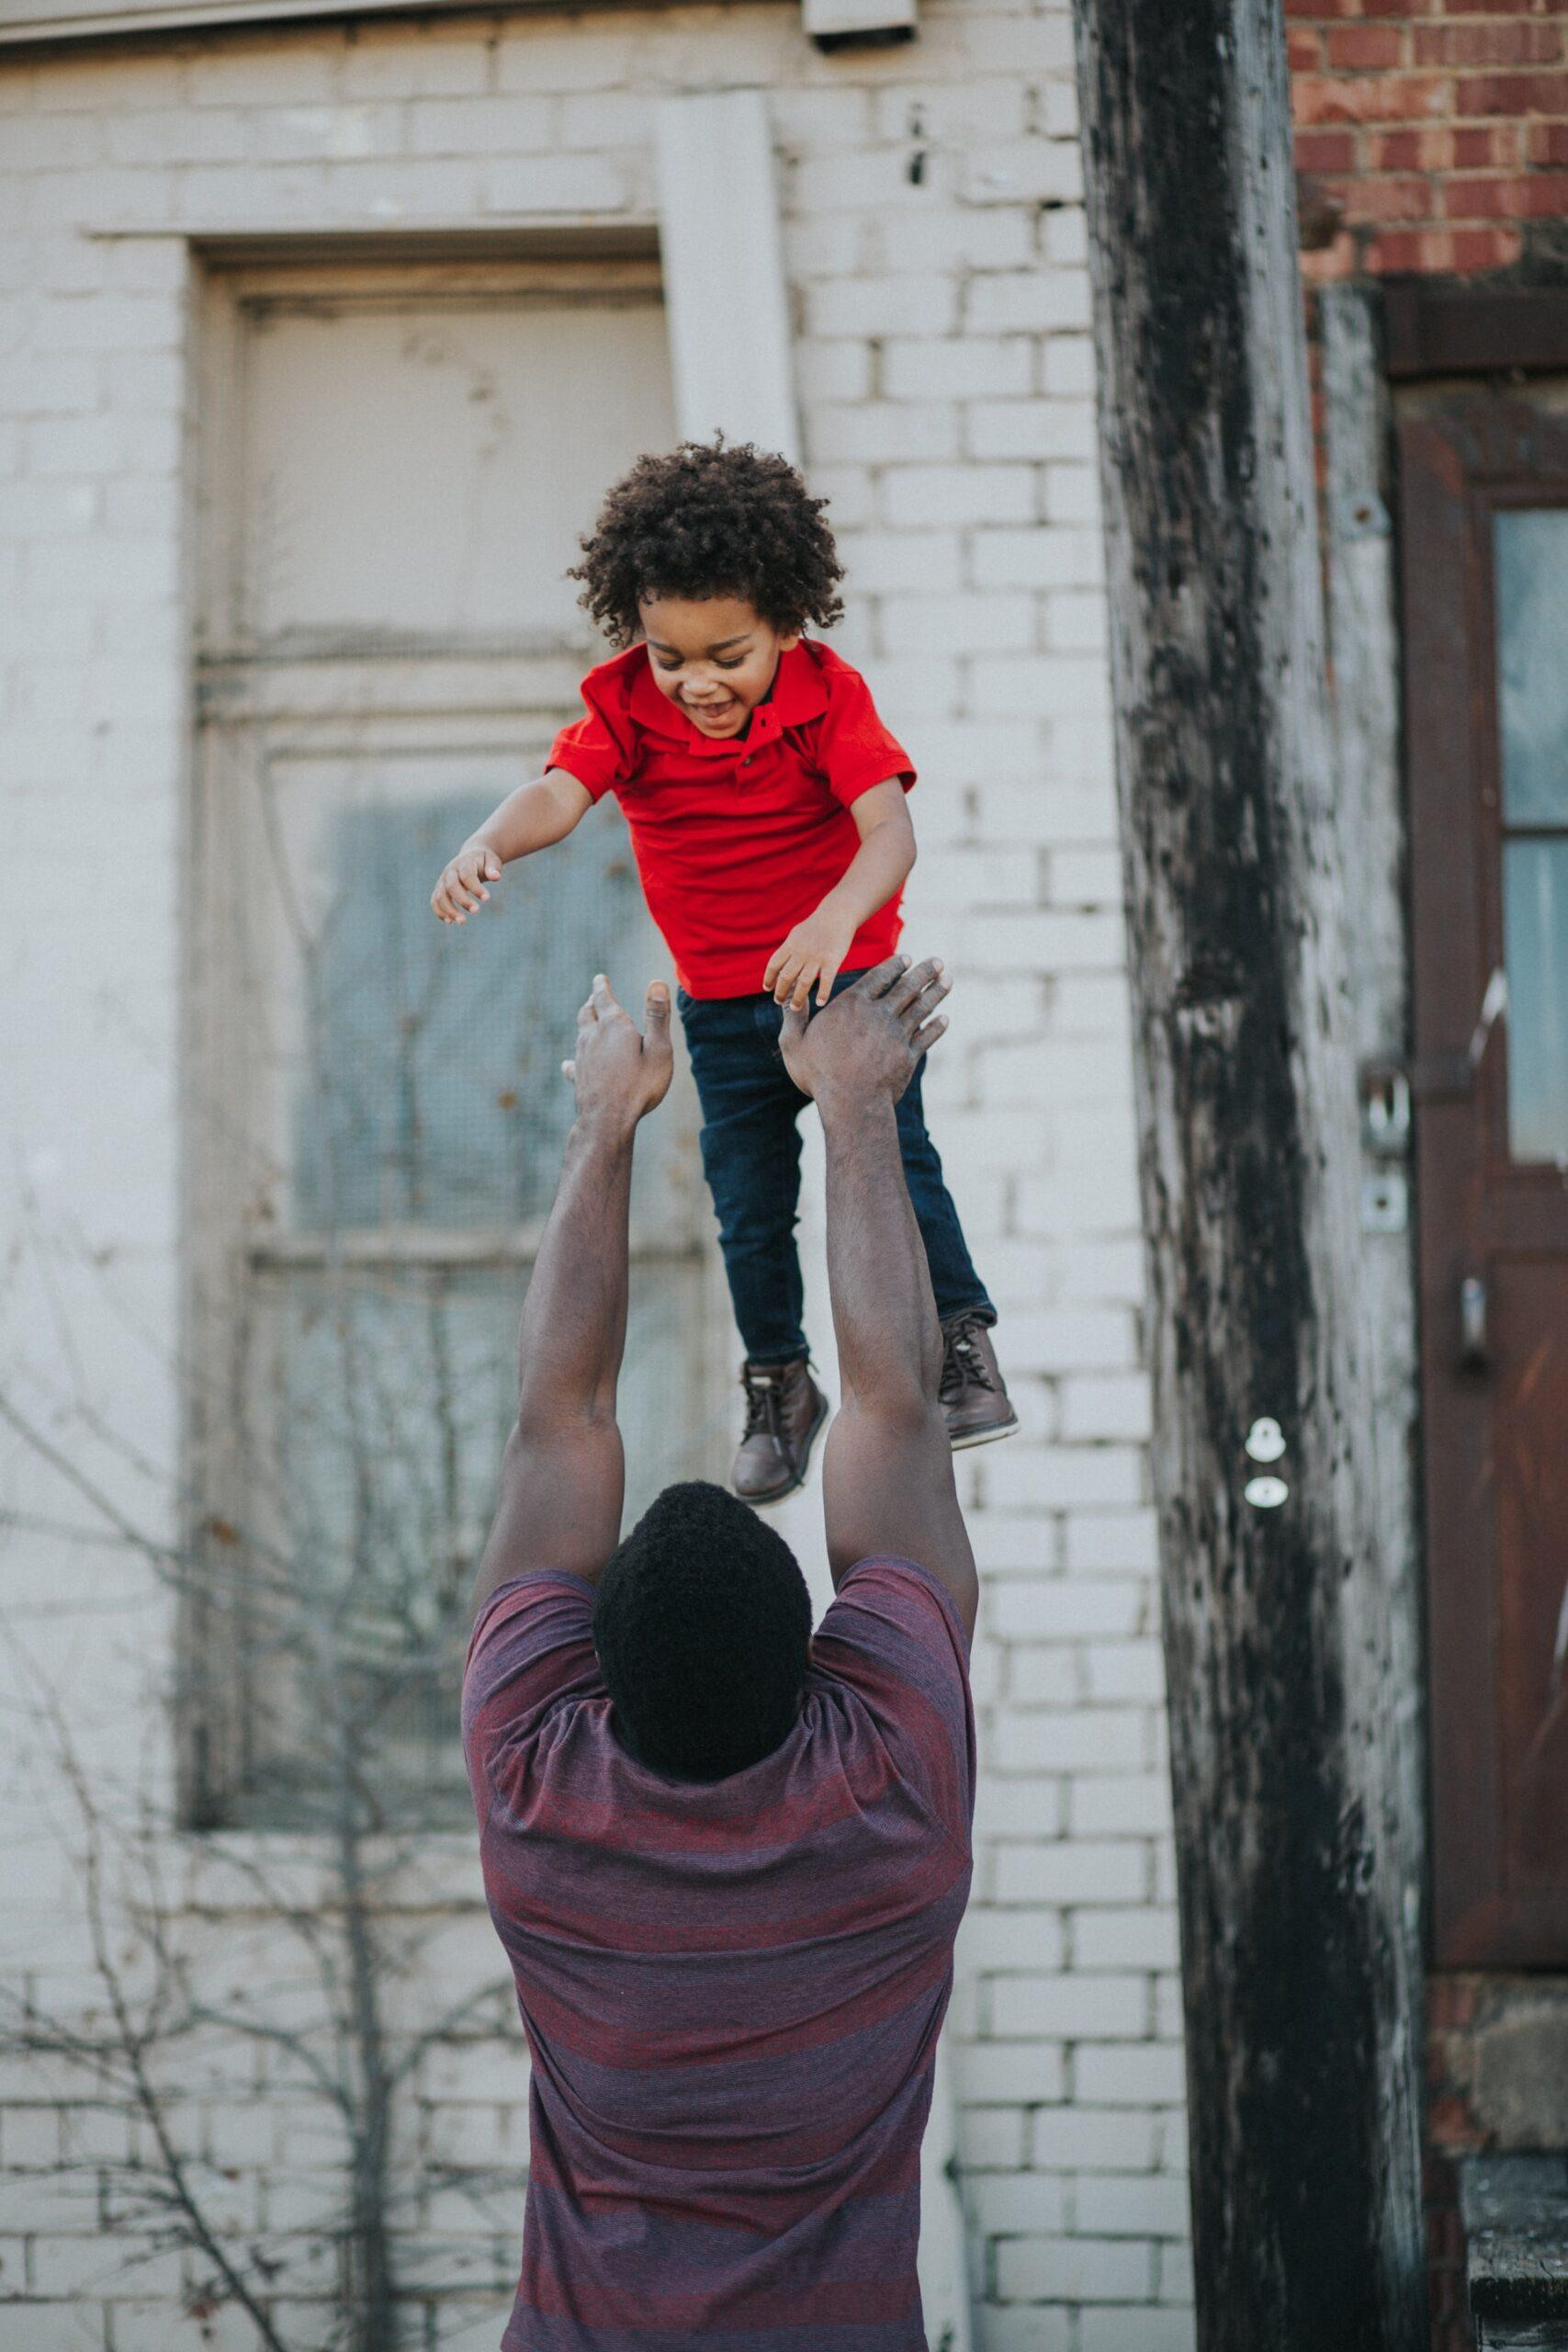 A parent tossing their child in the air.